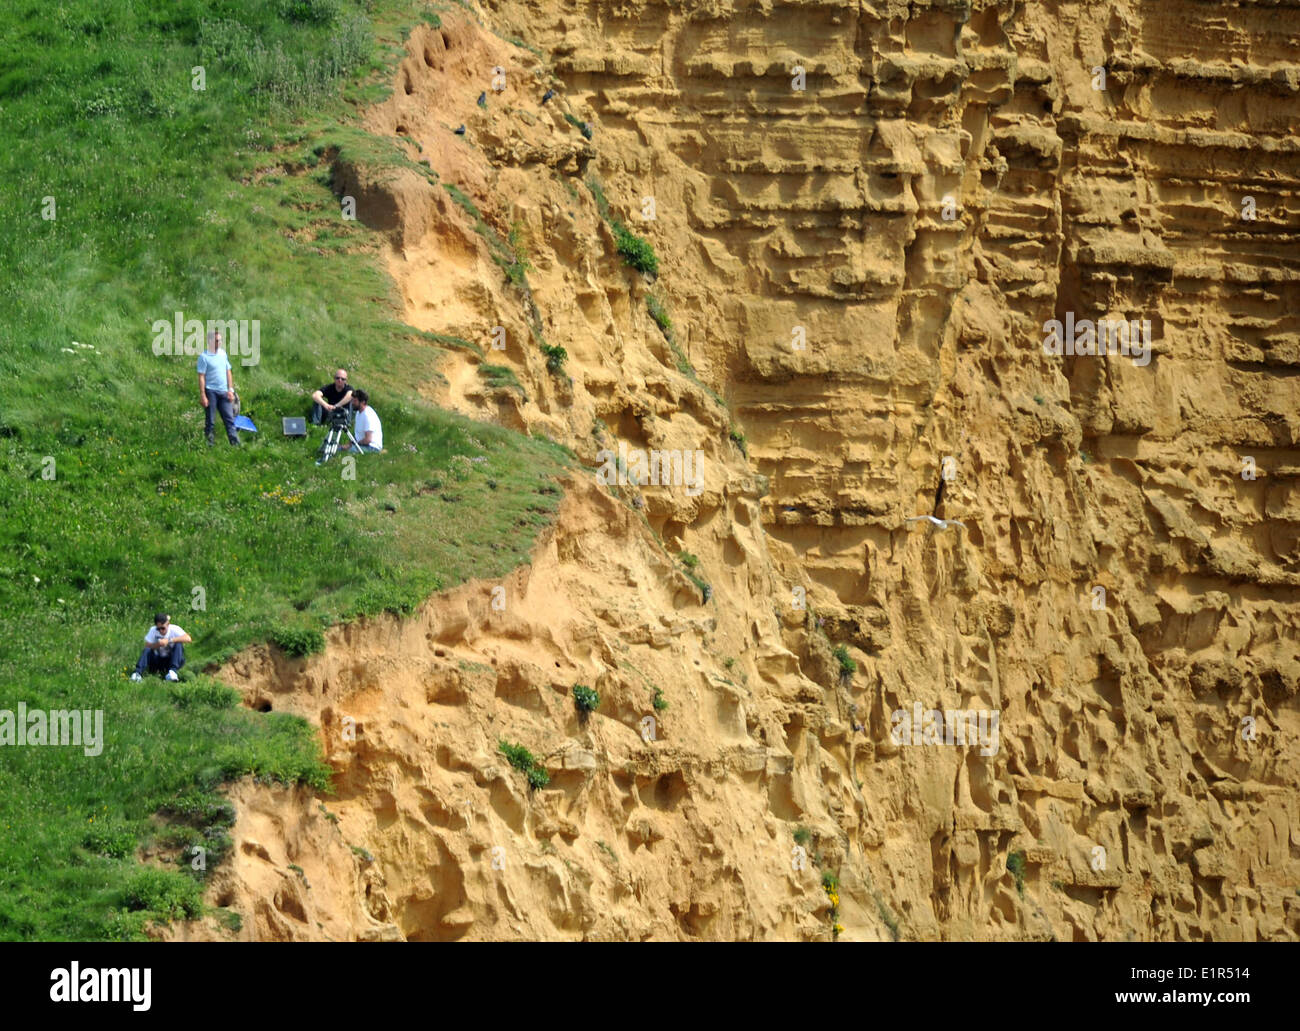 West Bay, Dorset, Britain, UK . 08th June, 2014. What can only be described as a crime too is this film crew working on the ITV crime series Broadchurch at West Bay in Dorset filming from a highly dangerous section of the icon cliffs used in the programme. Only a few months ago massive cliff falls have have occurred and this risky practice by the team has been criticised as foolhardy and dangerous. Credit:  Dorset Media Service/Alamy Live News - Stock Image